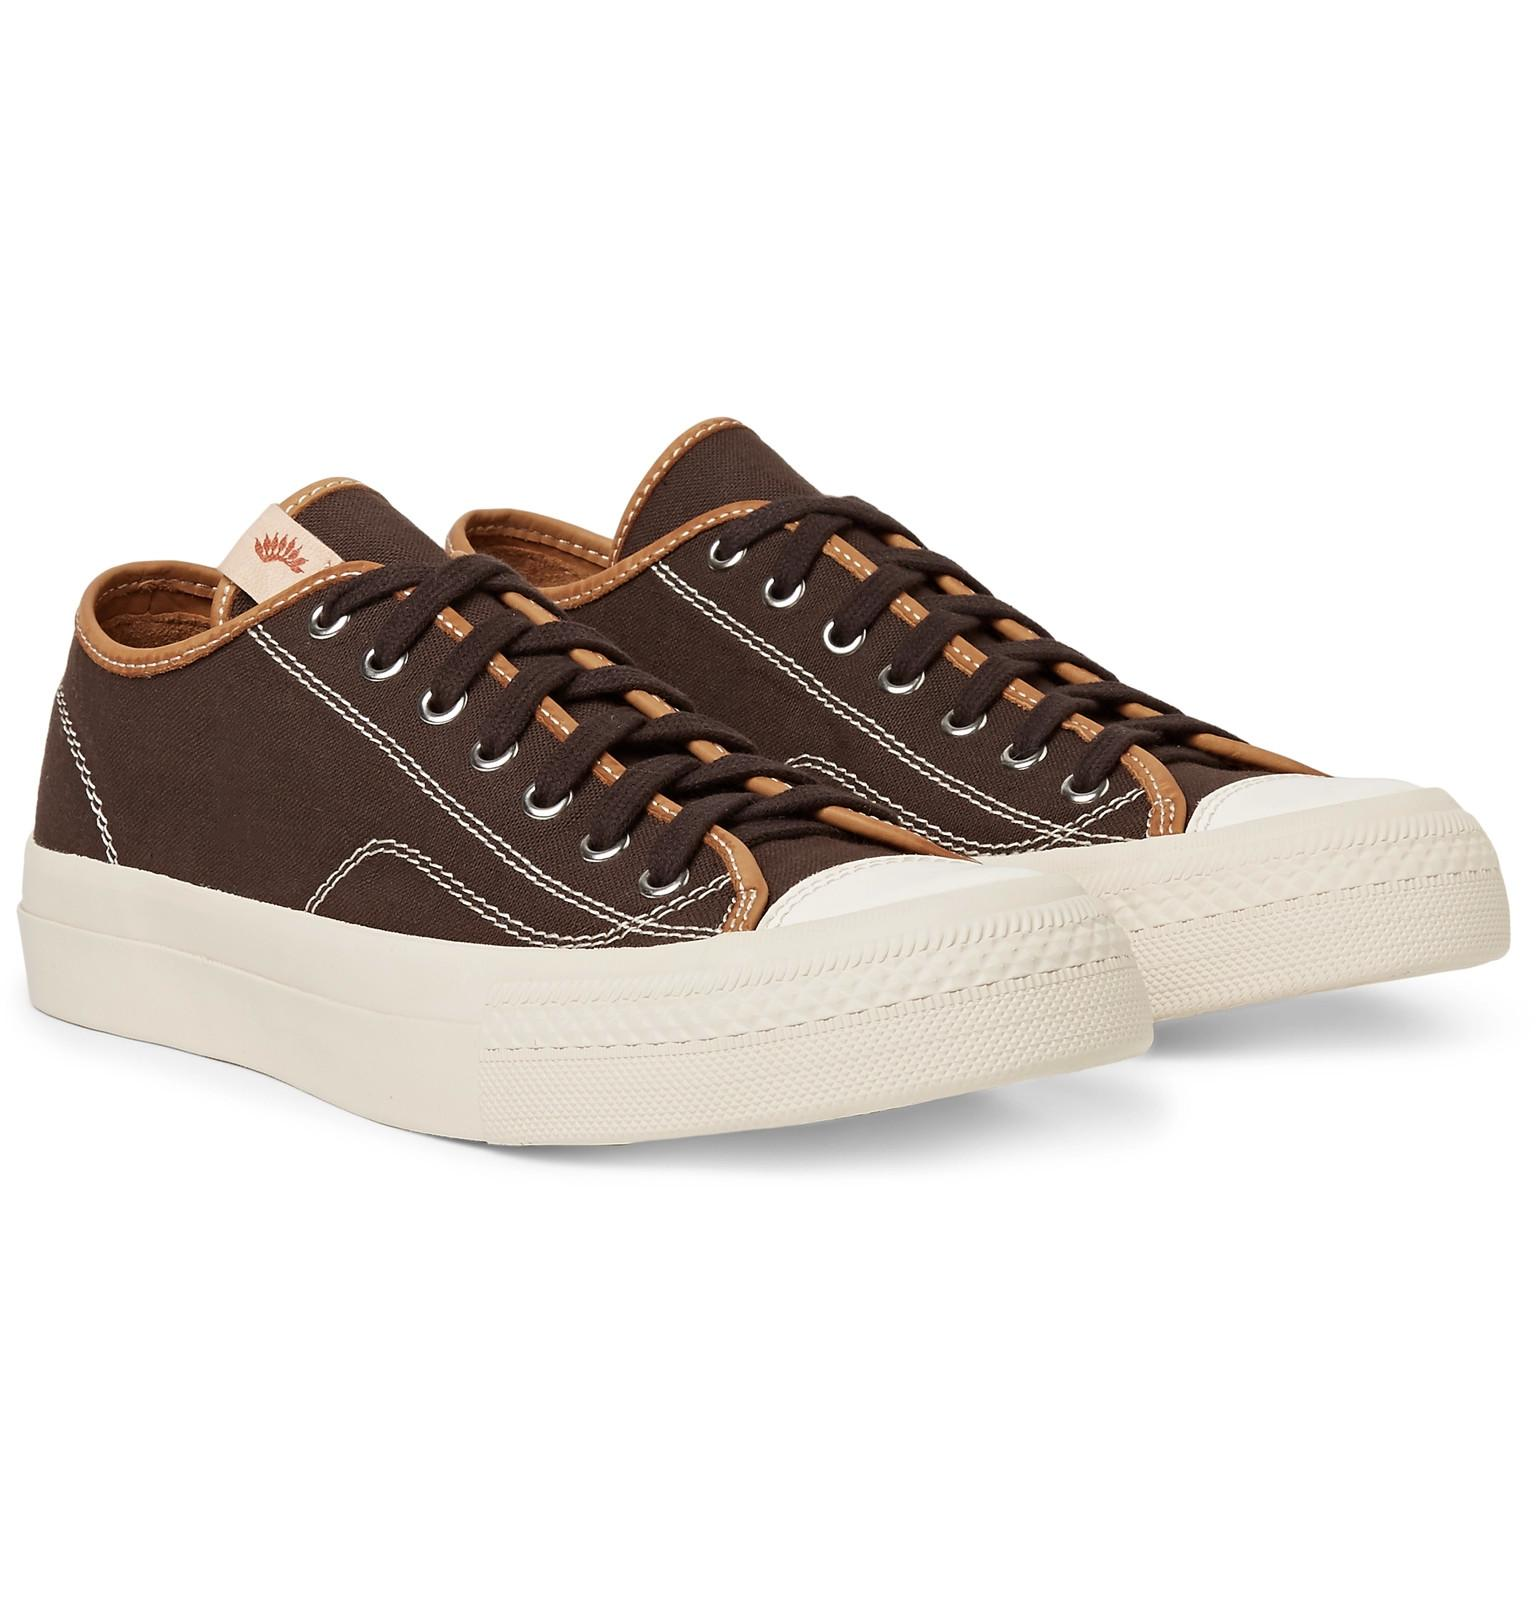 visvim skagway leather trimmed cotton canvas sneakers in